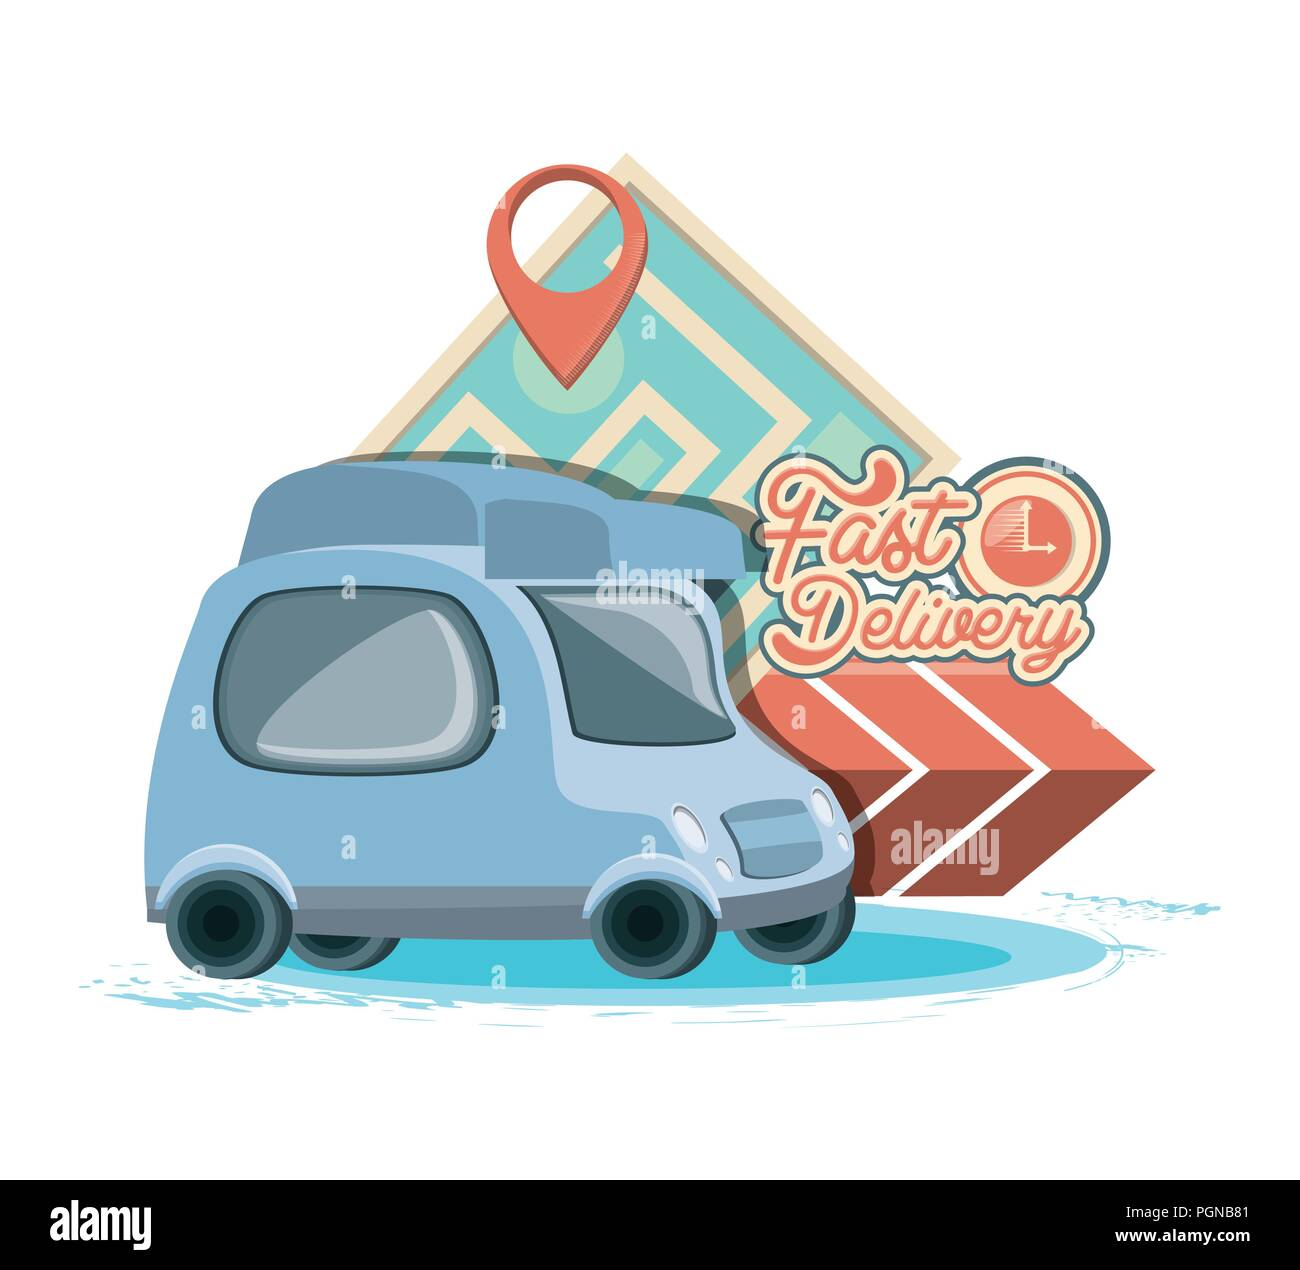 fast delivery service with van vector illustration design - Stock Image